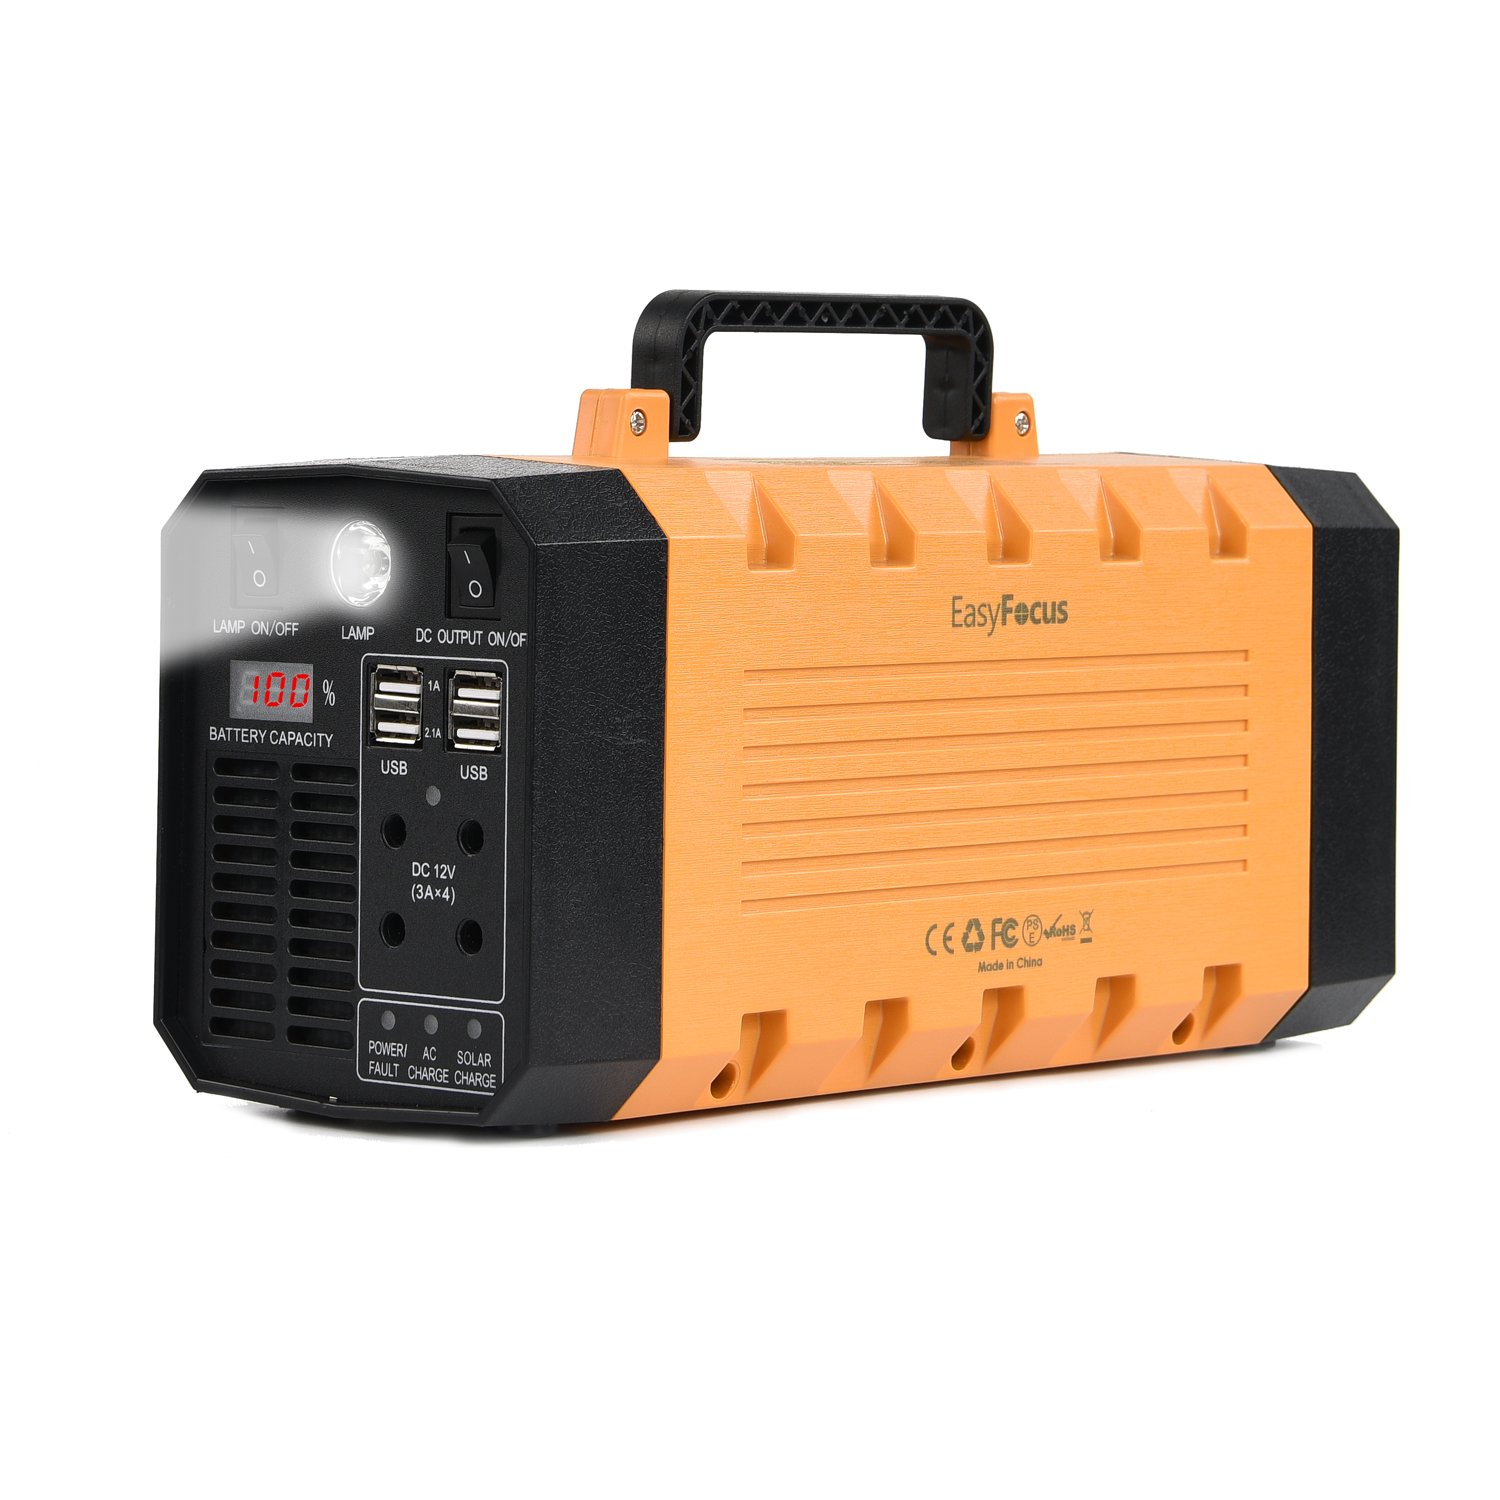 EasyFocus 500W 288WH Backup Portable Generator Solar Power Source 500W Pure Sine Wave Power Inverter UPS 26AH Li-on Battery CPAP Pack Home Camping Emergency Power Supply Charged by Solar/AC Outlet/Car